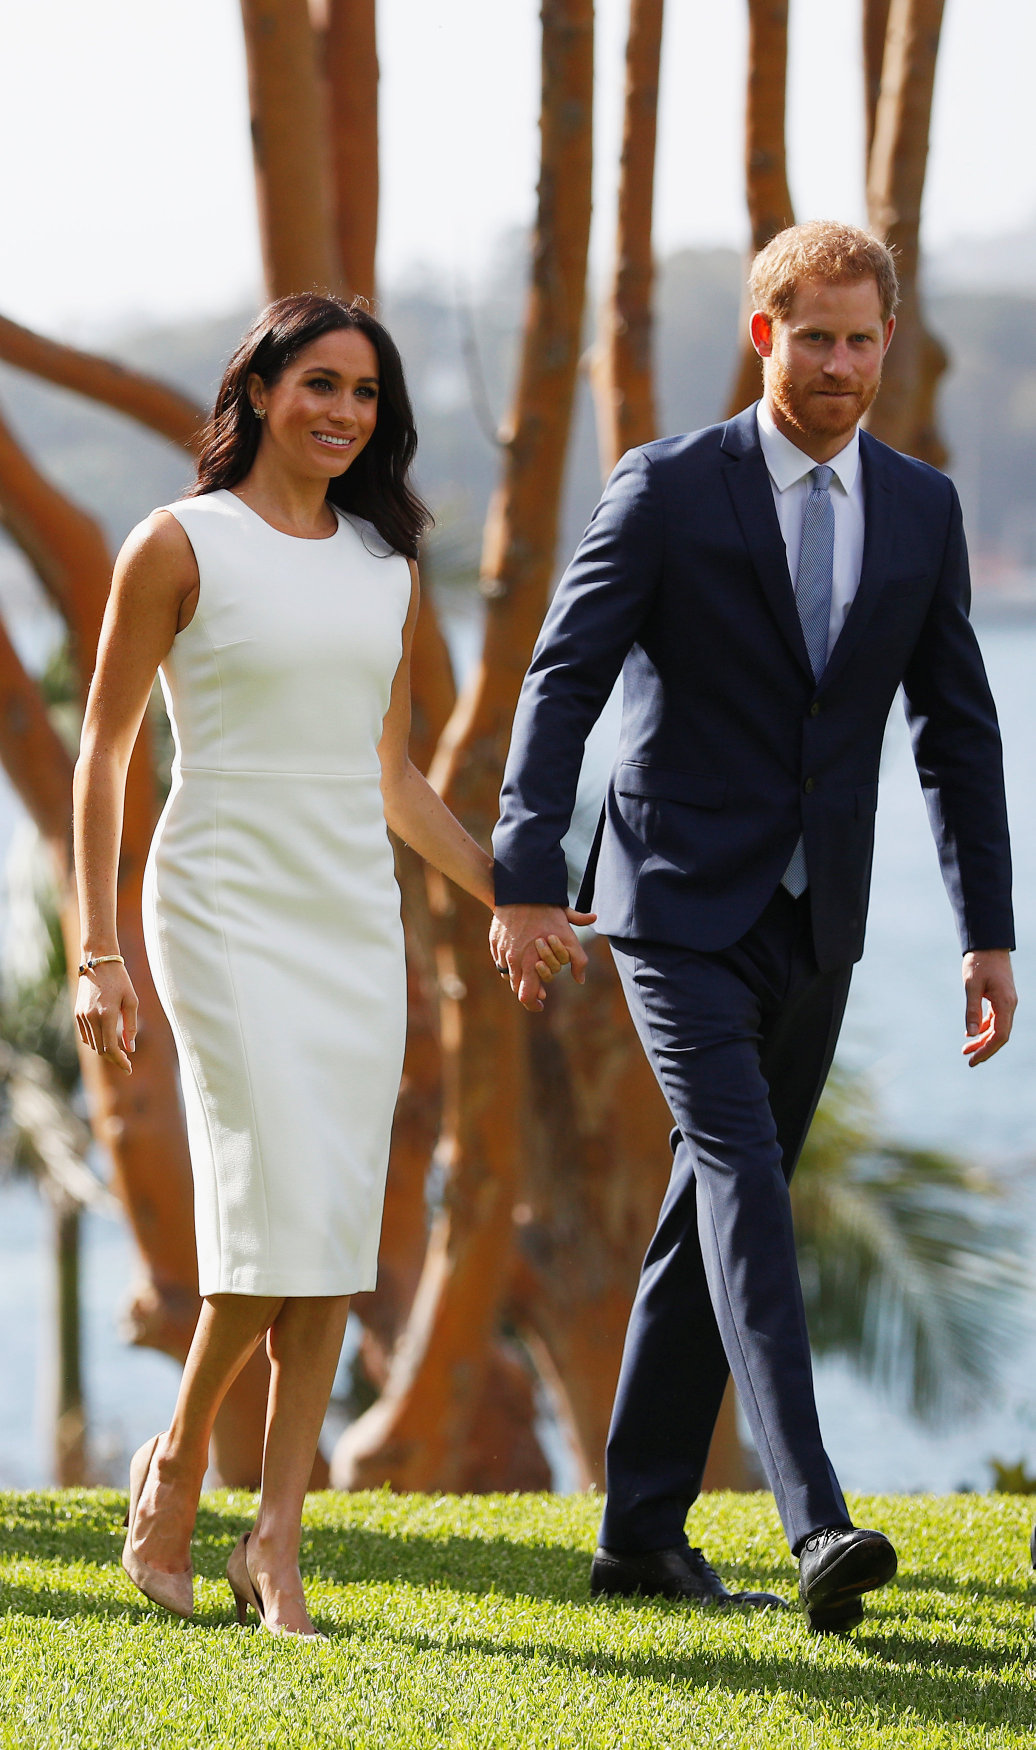 SYDNEY, AUSTRALIA - OCTOBER 16: Prince Harry, Duke of Sussex and Meghan, Duchess of Sussex attend a Welcome Event at Admiralty House on October 16, 2018 in Sydney, Australia. The Duke and Duchess of Sussex are on their official 16-day Autumn tour visiting cities in Australia, Fiji, Tonga and New Zealand. (Photo by Phil Noble - Pool/Getty Images)